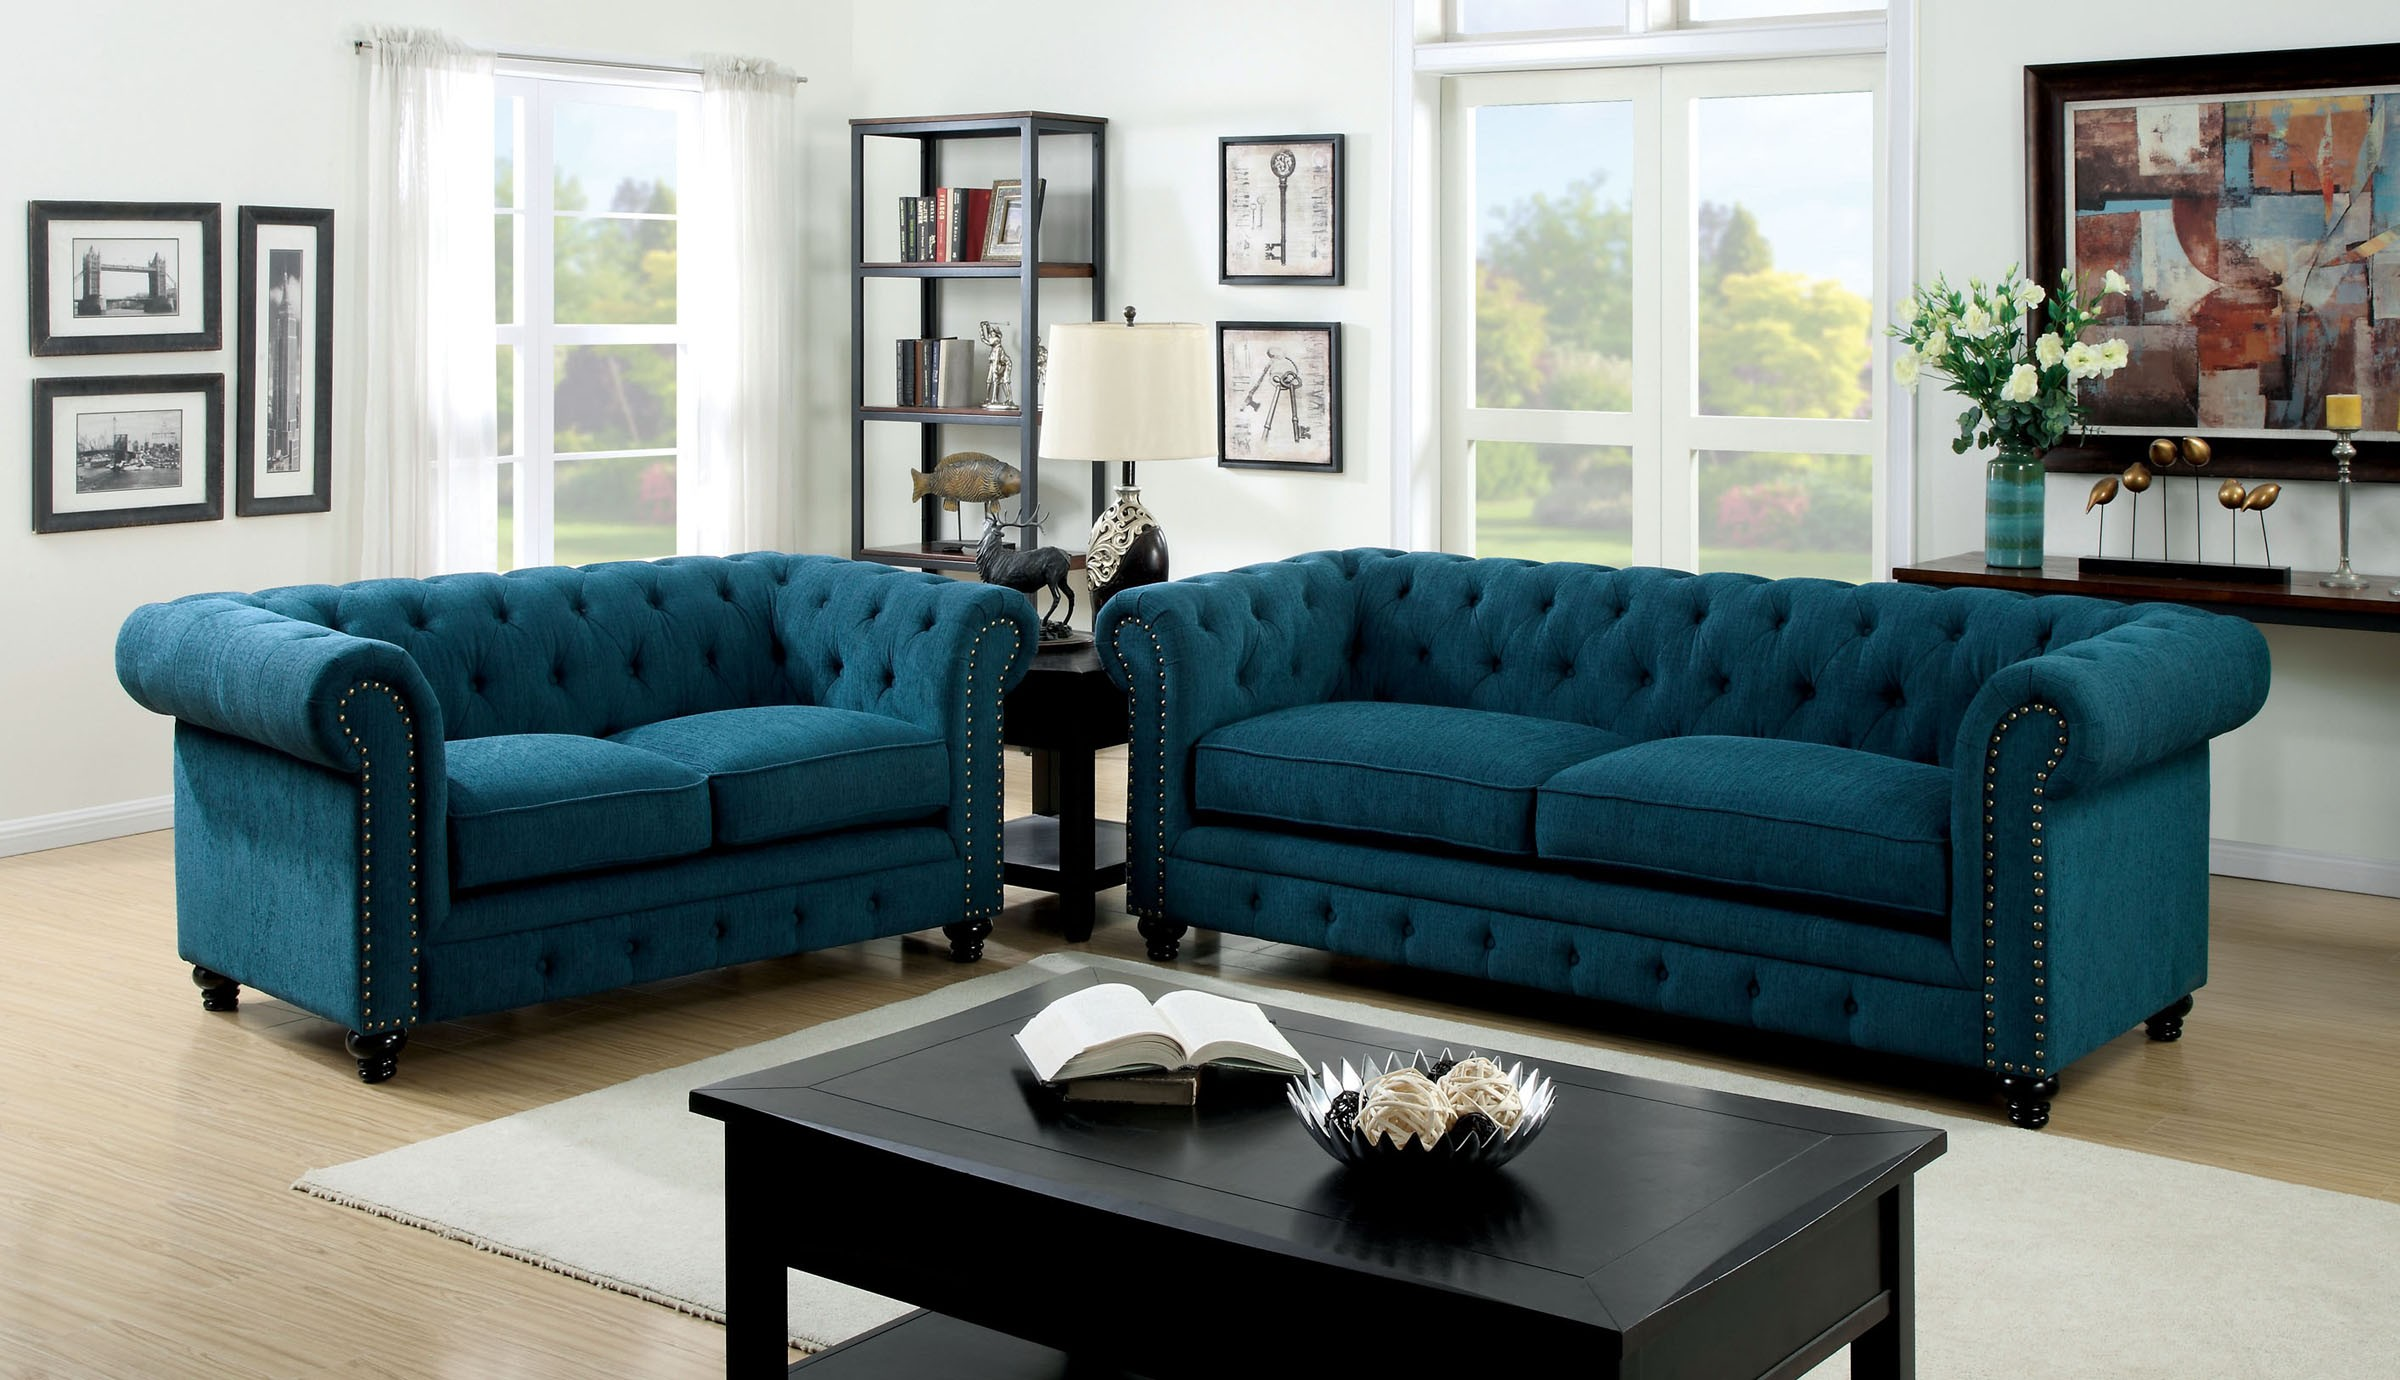 dark teal chair 2017 lexus gx captains chairs stanford fabric living room set from furniture